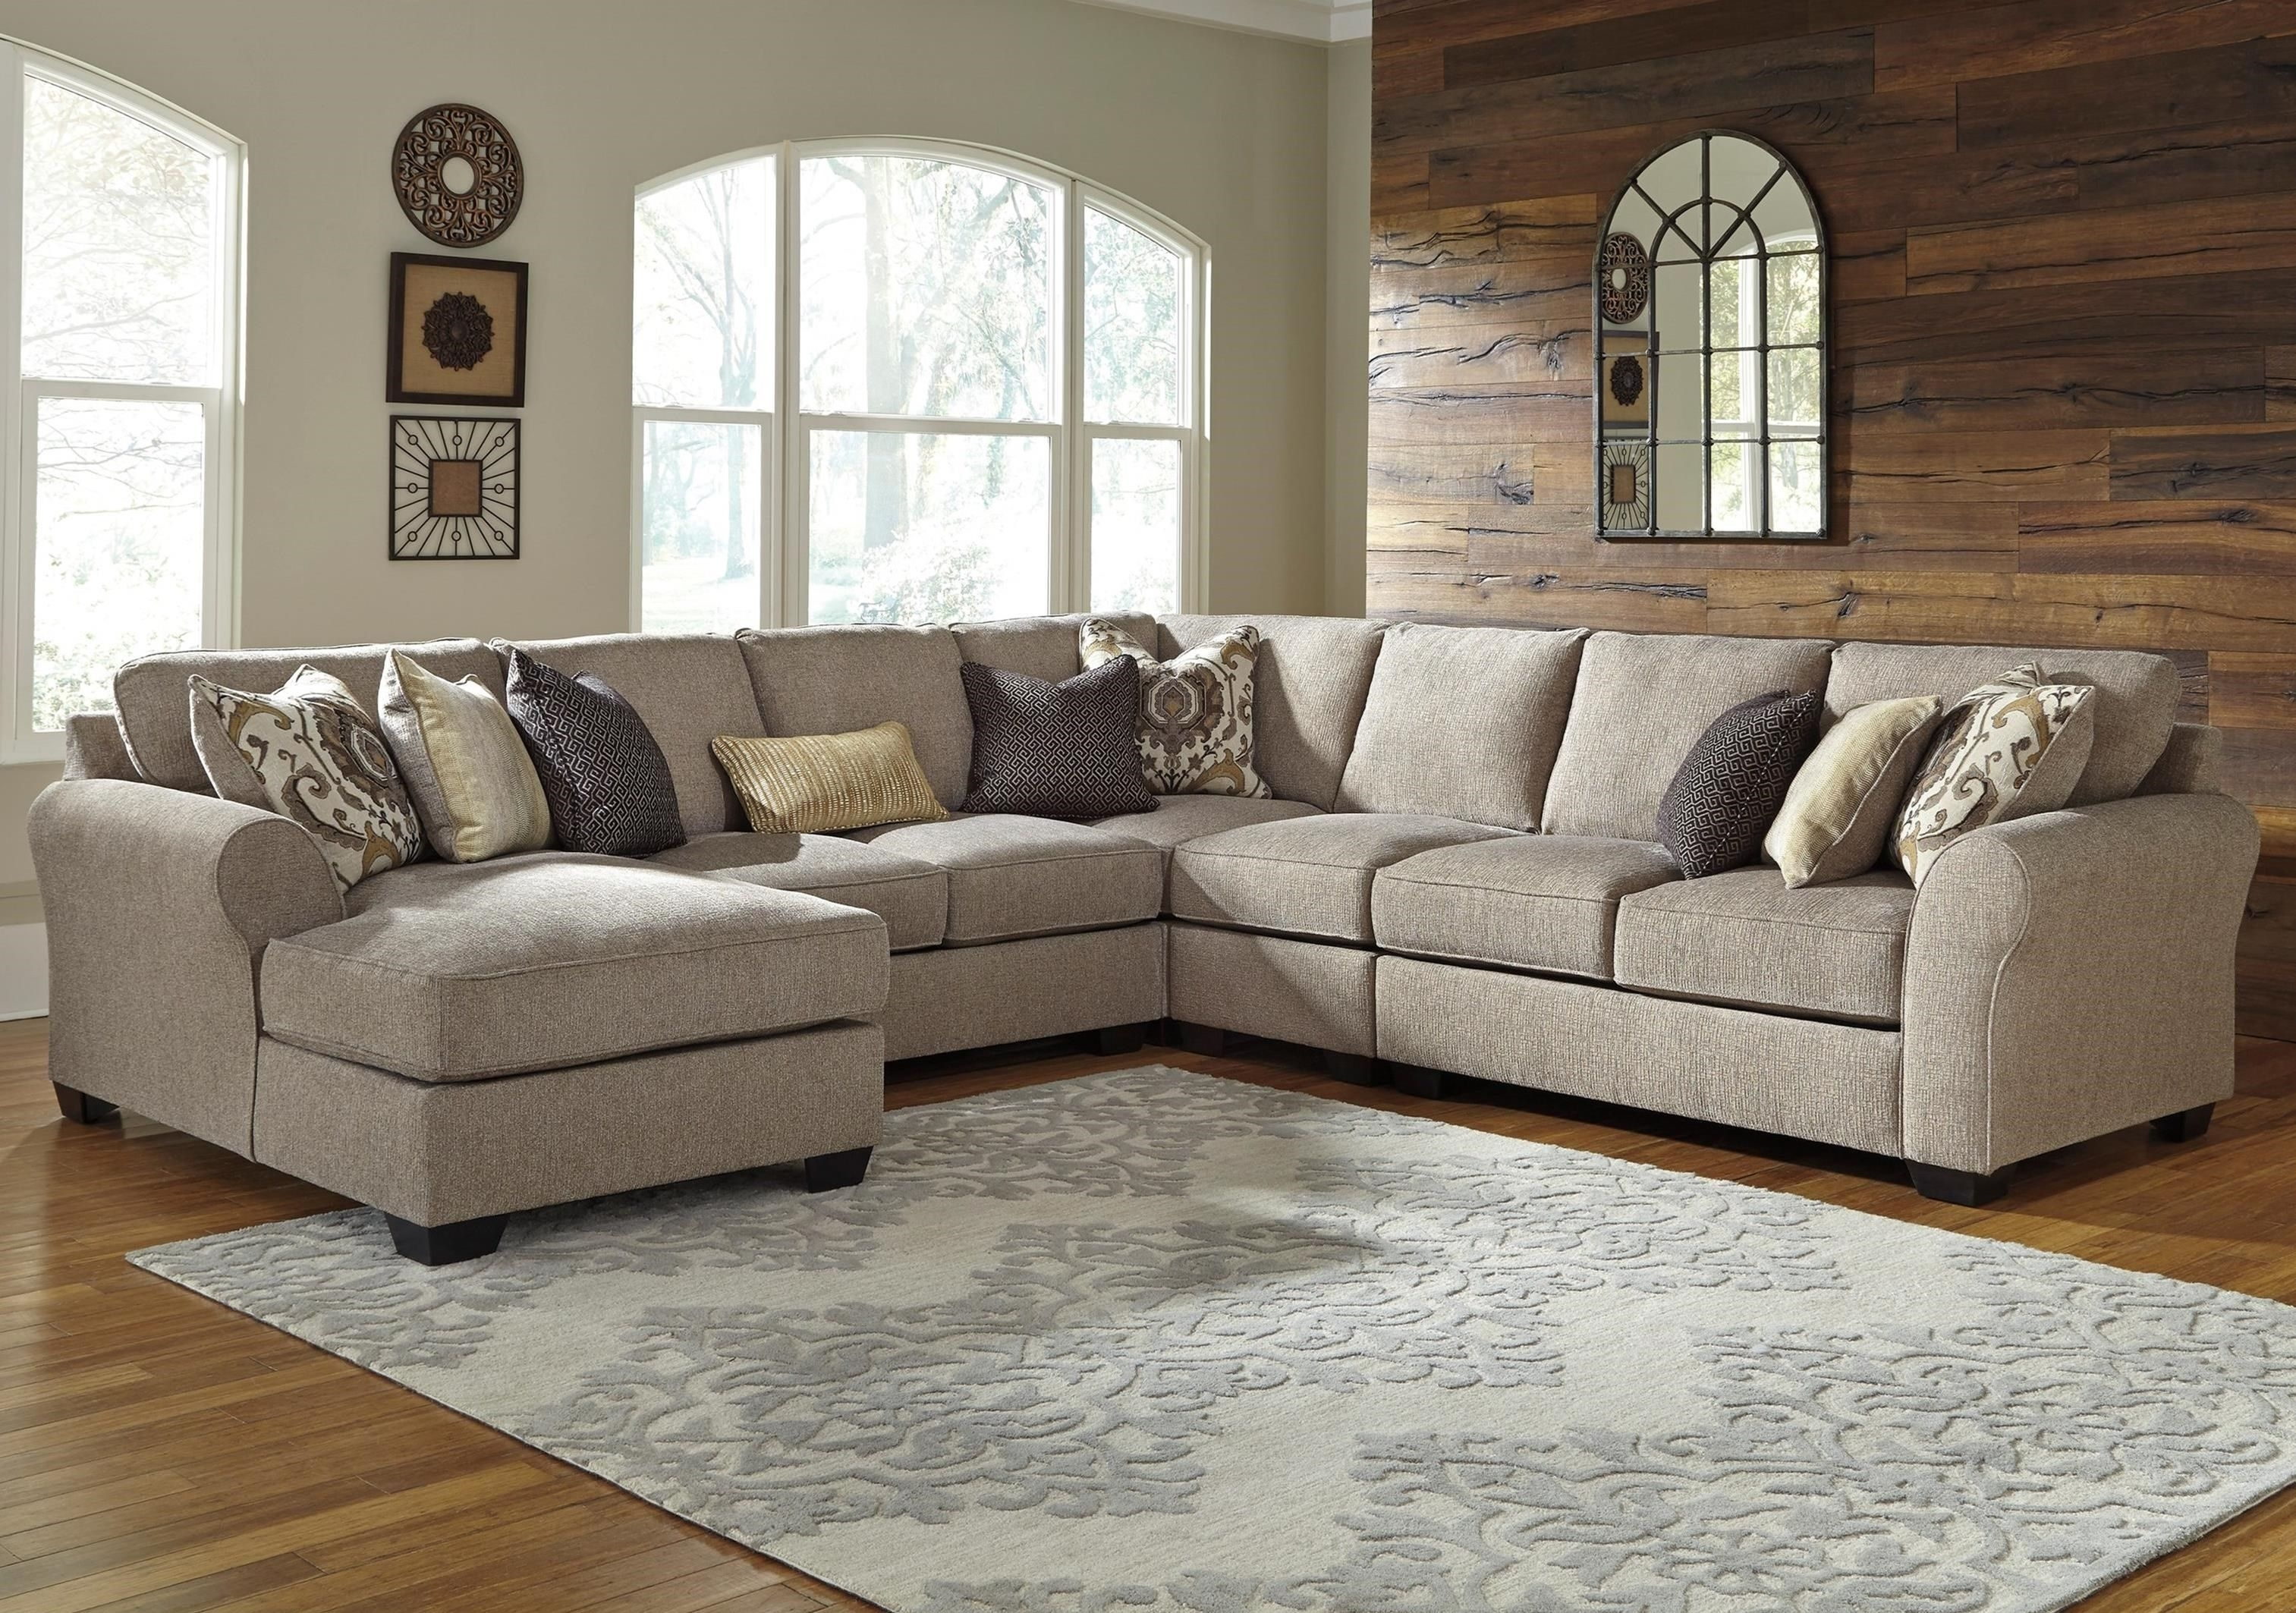 Pantomine 5 Piece Sectional With Left Chaisebenchcraft At In Denali Charcoal Grey 6 Piece Reclining Sectionals With 2 Power Headrests (View 12 of 25)